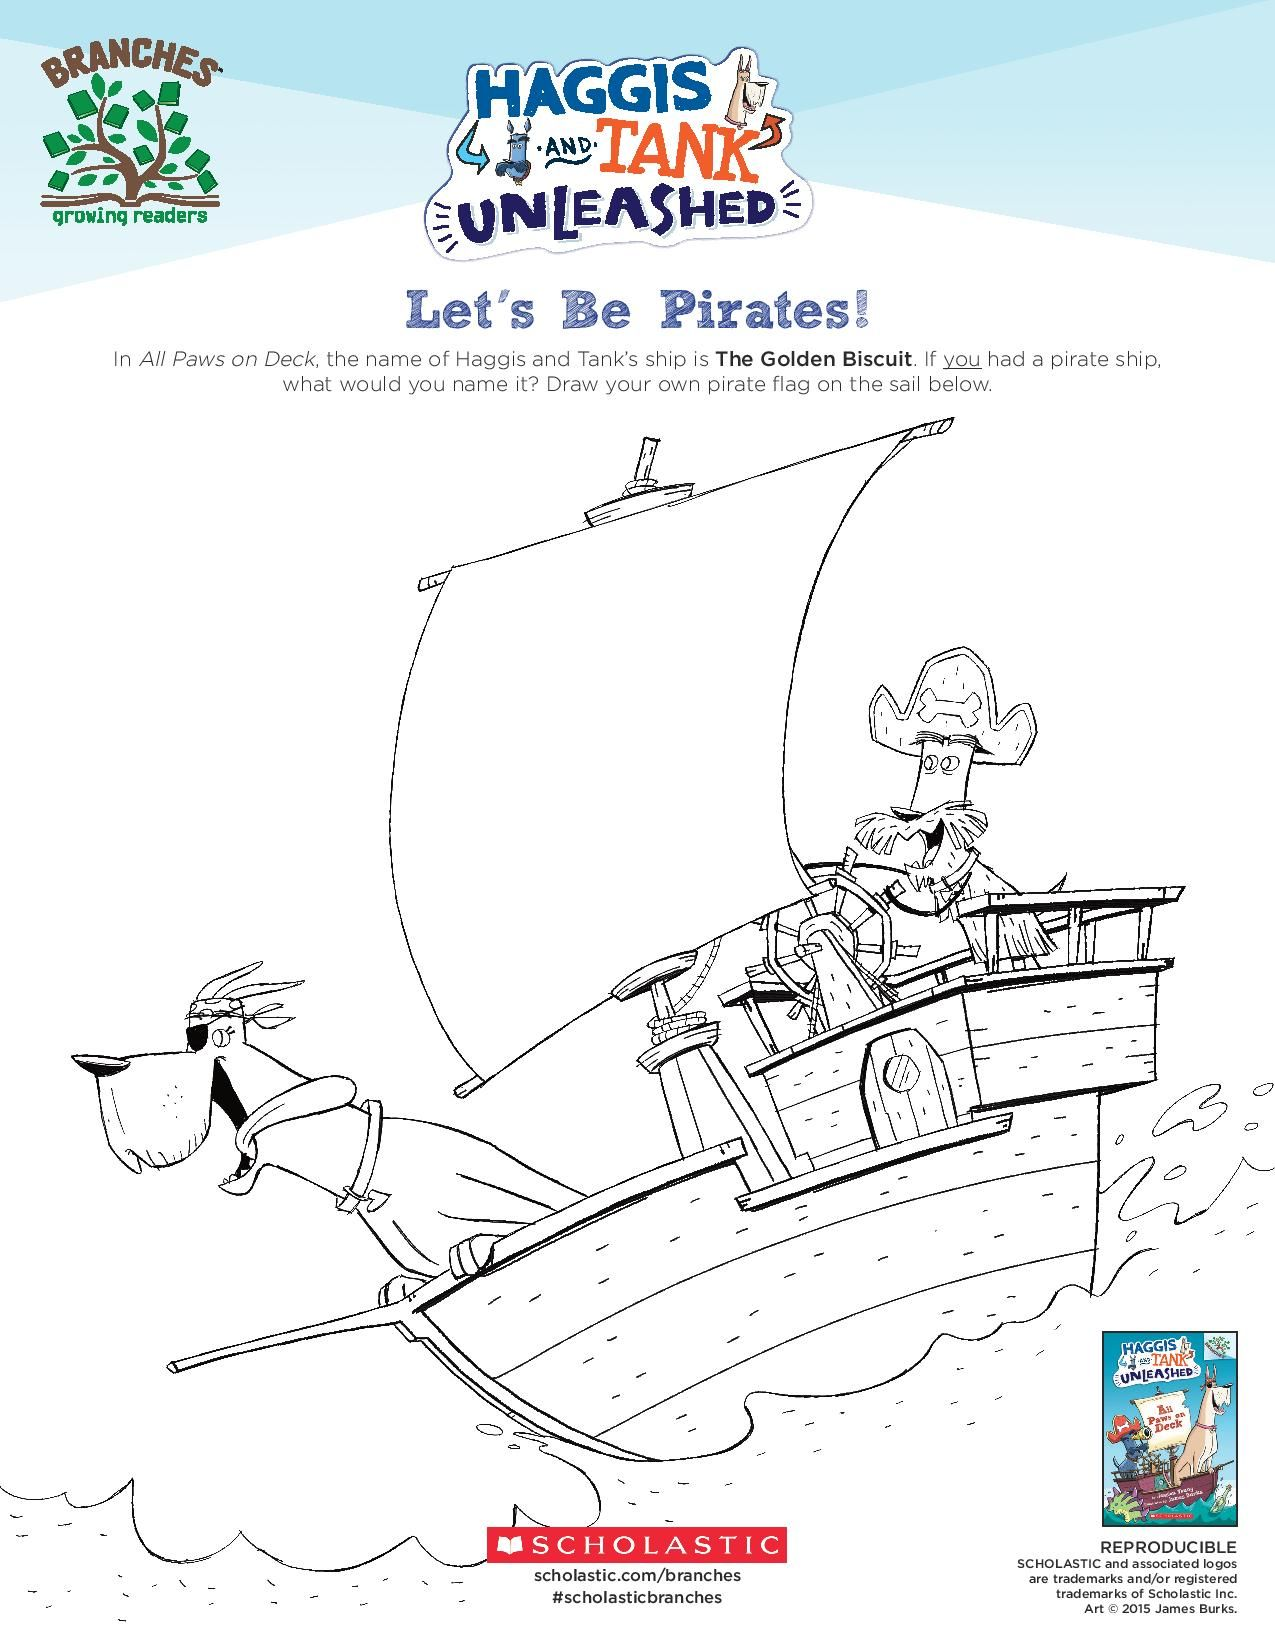 Draw your own pirate ship flag! Let your young reader's